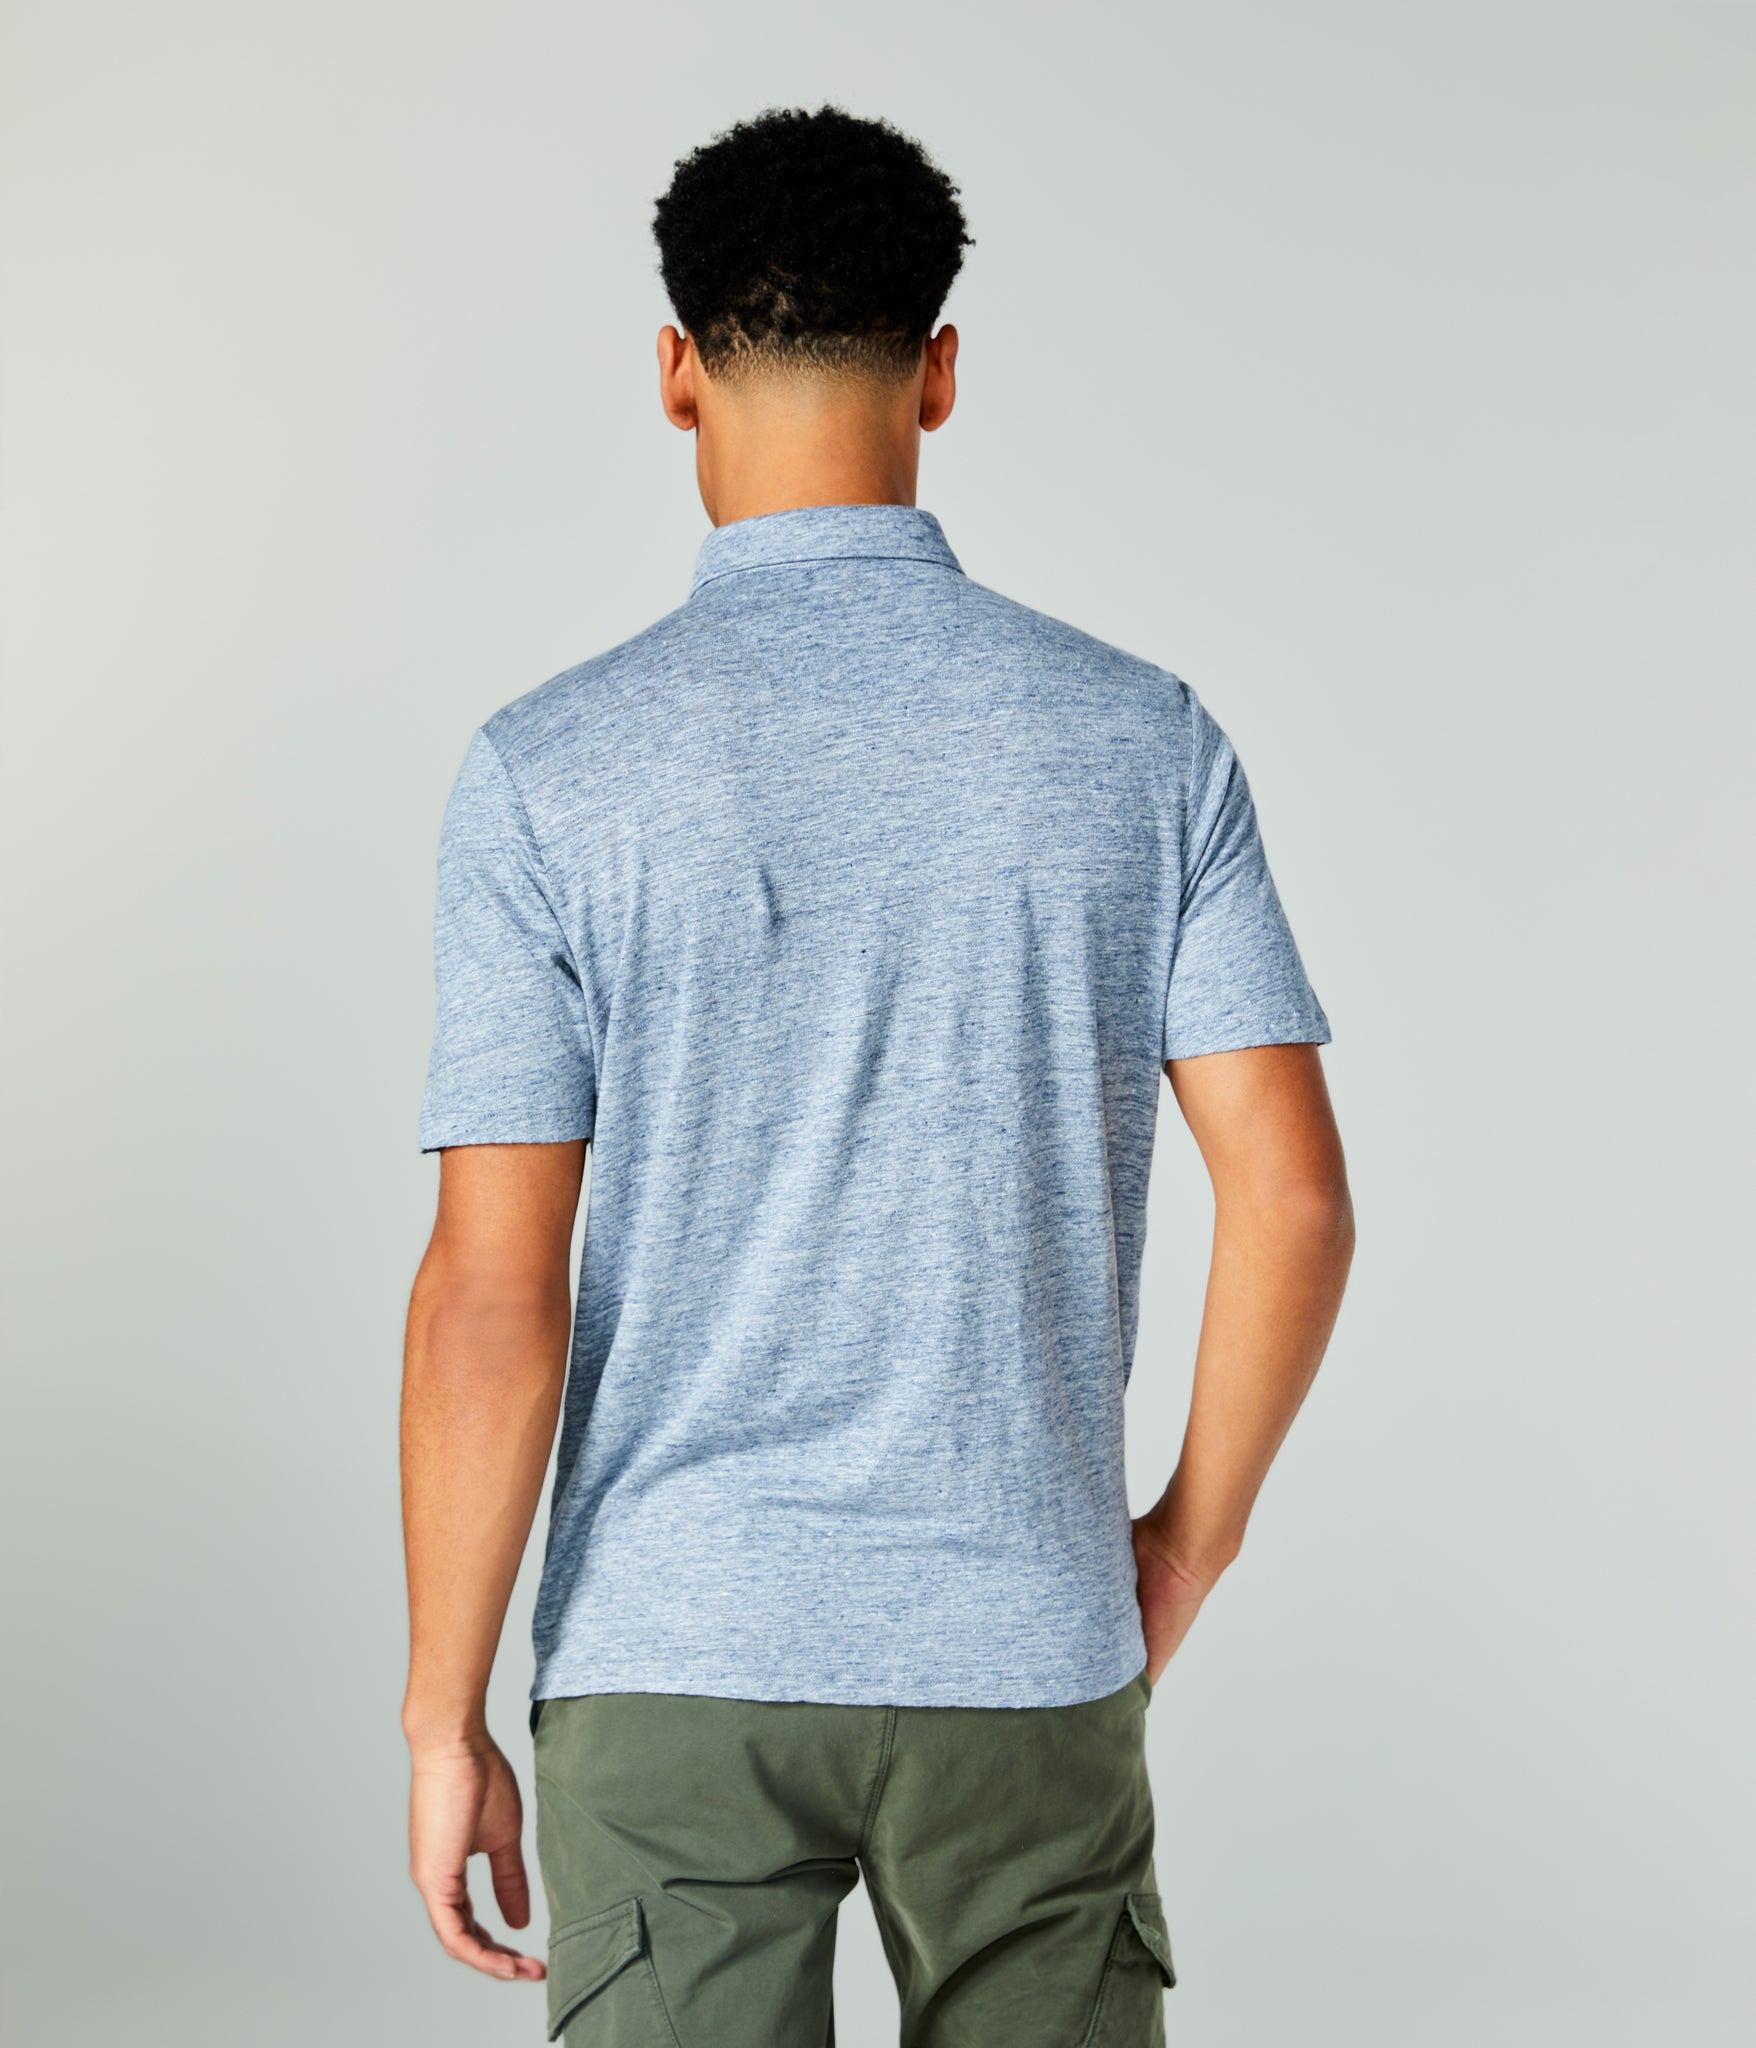 Linen Heather Polo - Indigo Heather